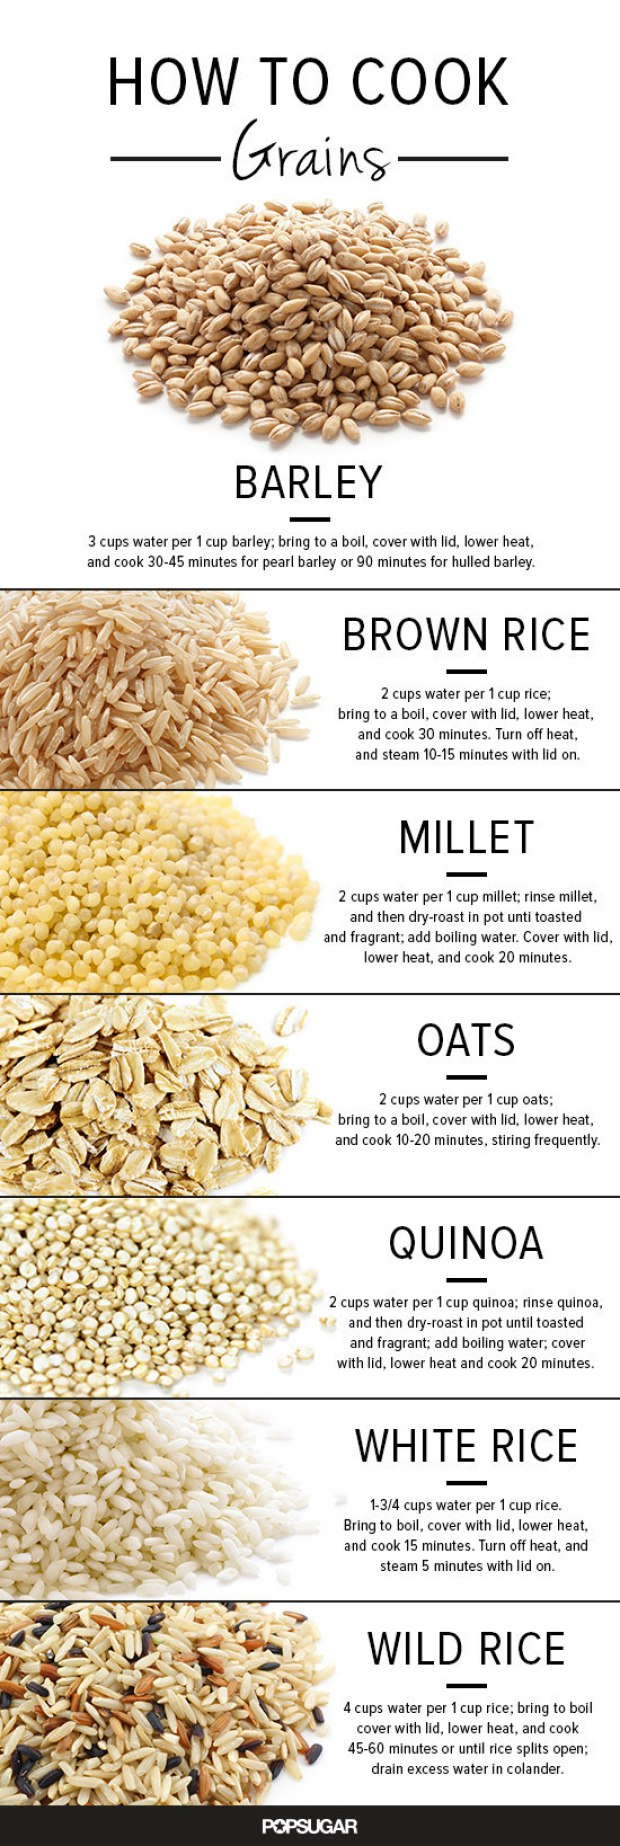 cook-grains